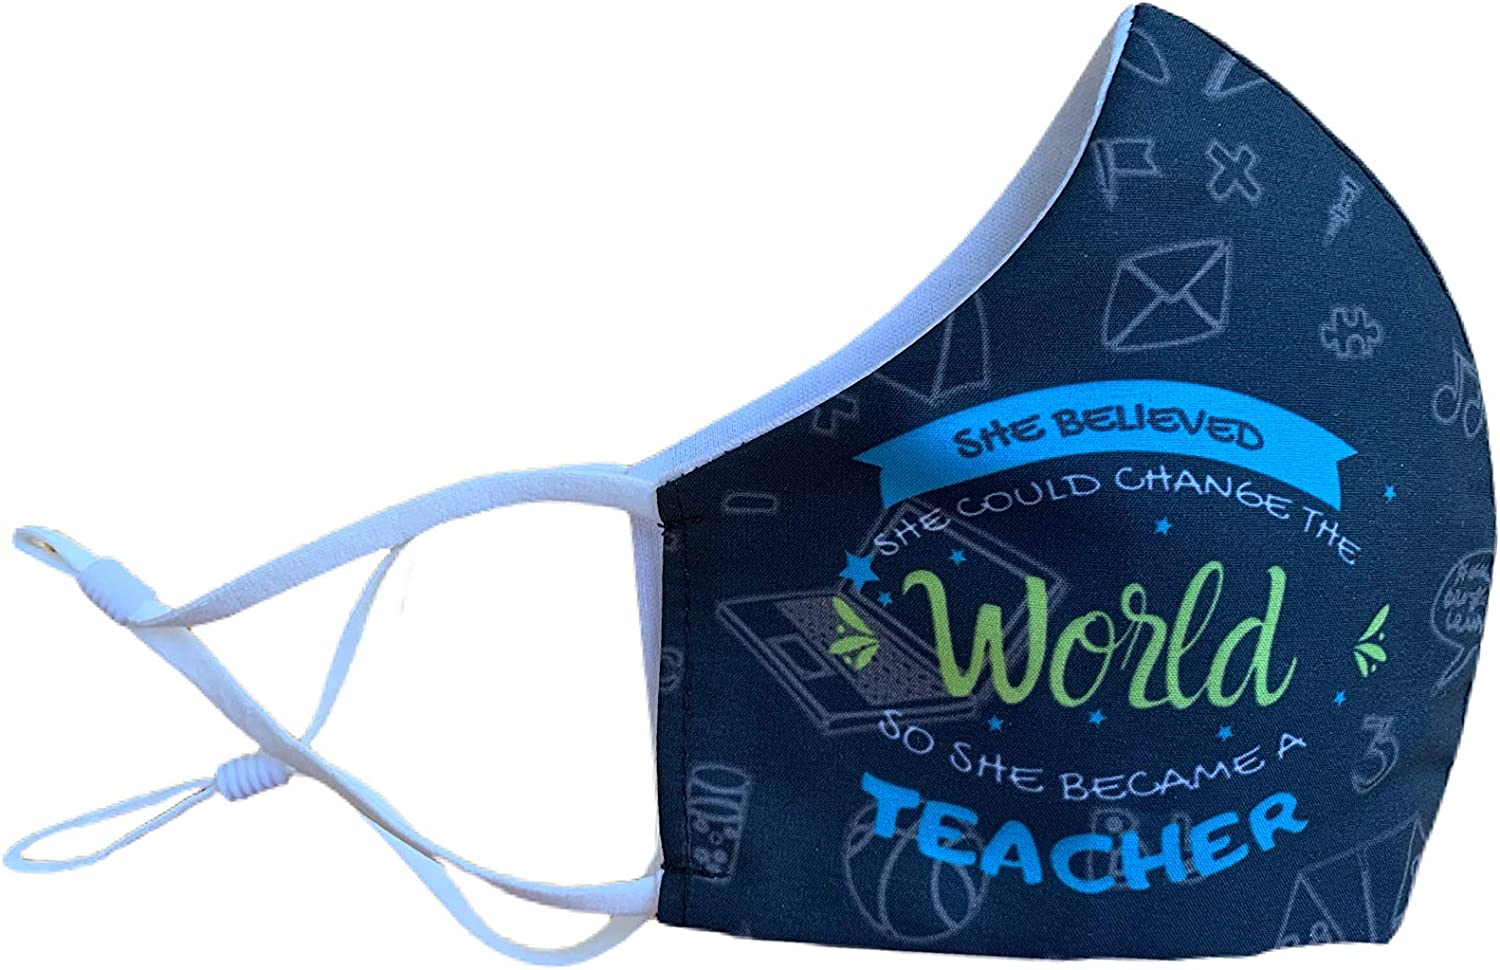 Teacher Mask | Teacher change World | Safety Reusable & Washable Anti Dust Mouth Fashion Balaclava Cover | Breathable Bandanna with Filter Slot | Inside Layer Cotton 100% | Men Women | Back to School